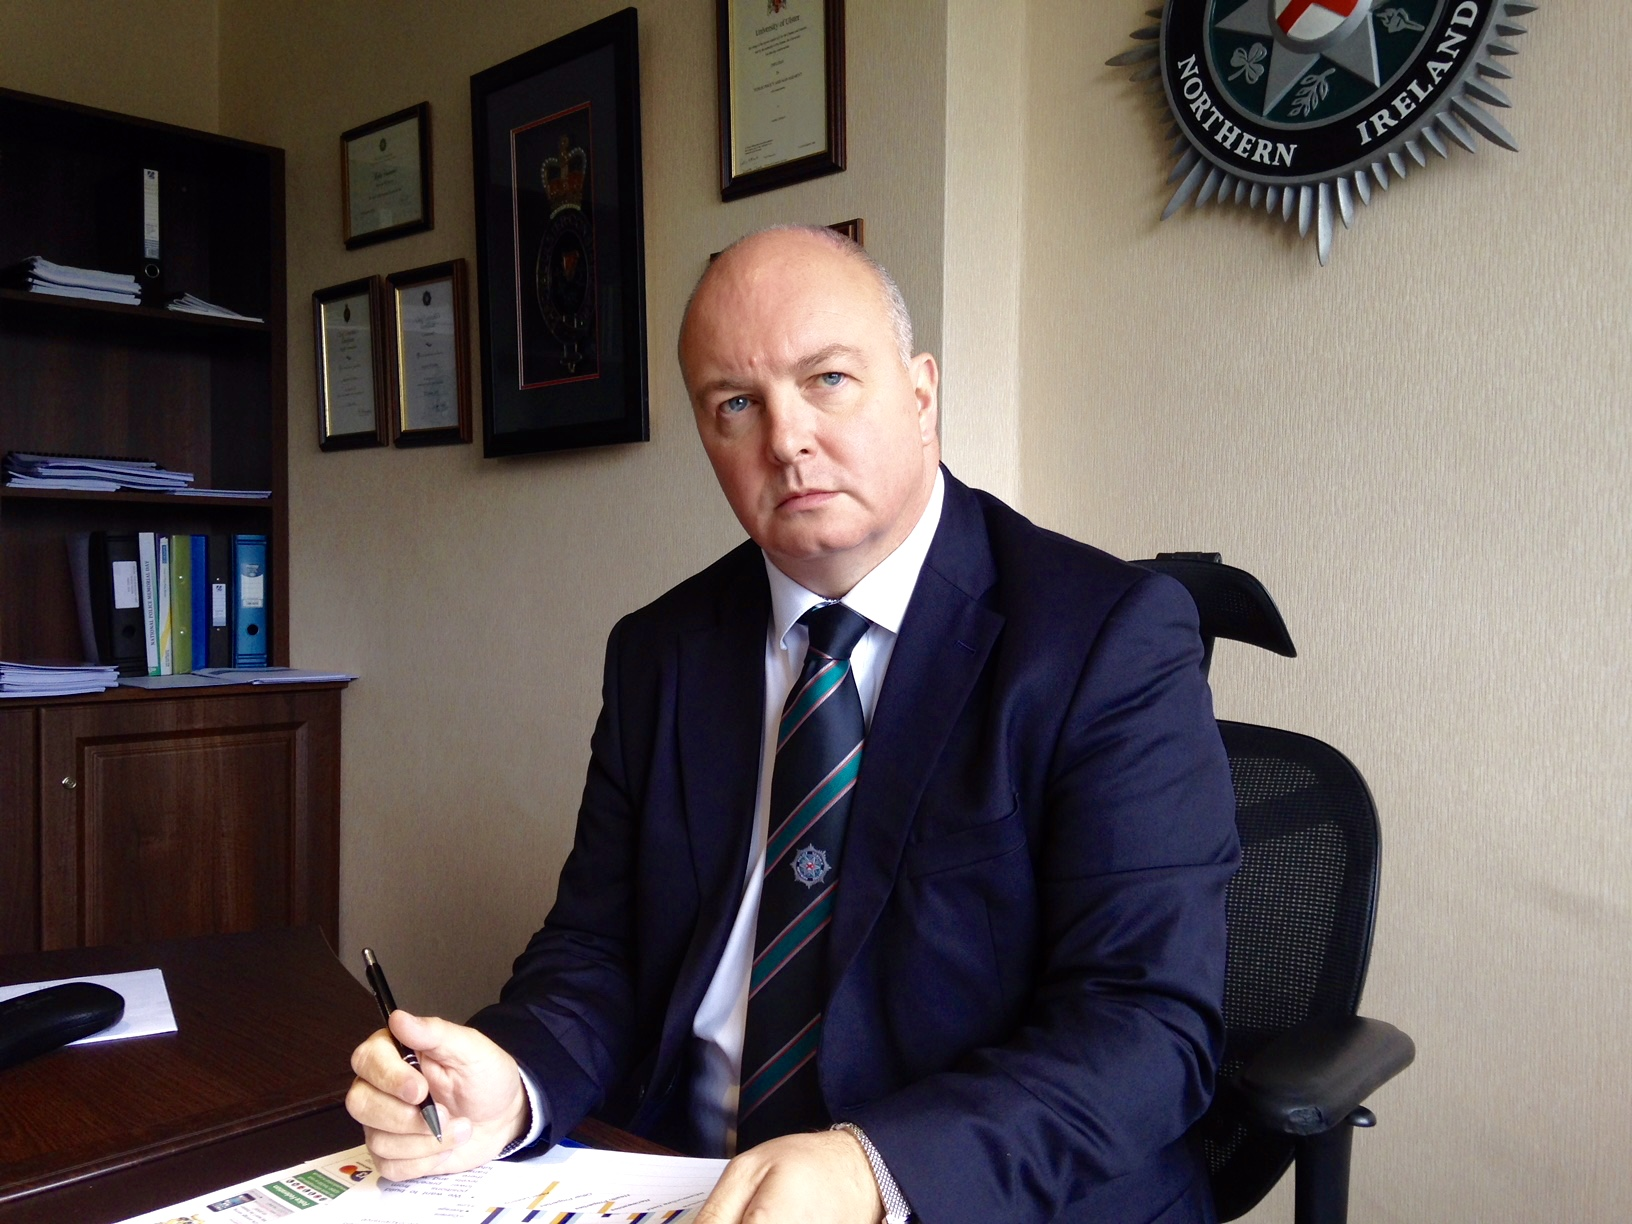 PFNI says attack was 'futile act of terrorism'